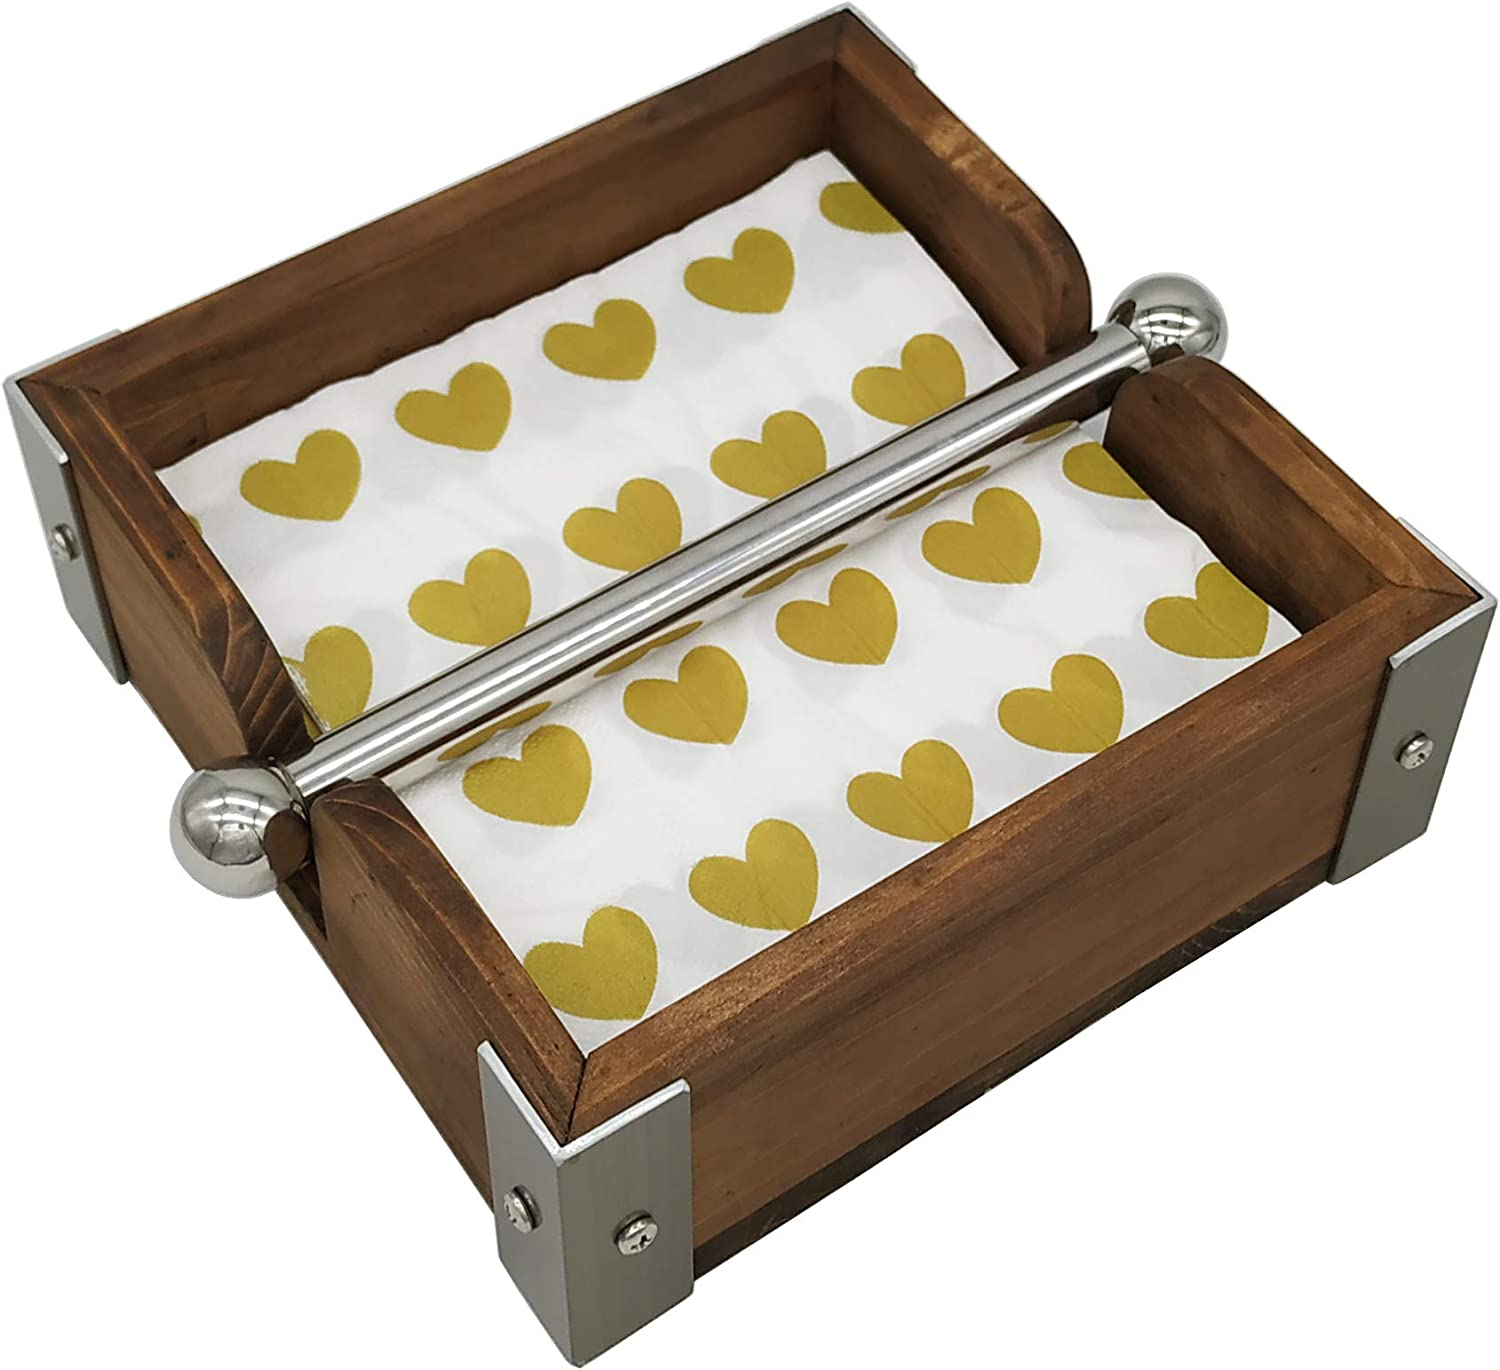 OwlGift outlet Vintage Wood Napkin Holder Weighted 2021new shipping free Stainless Steel w Ce